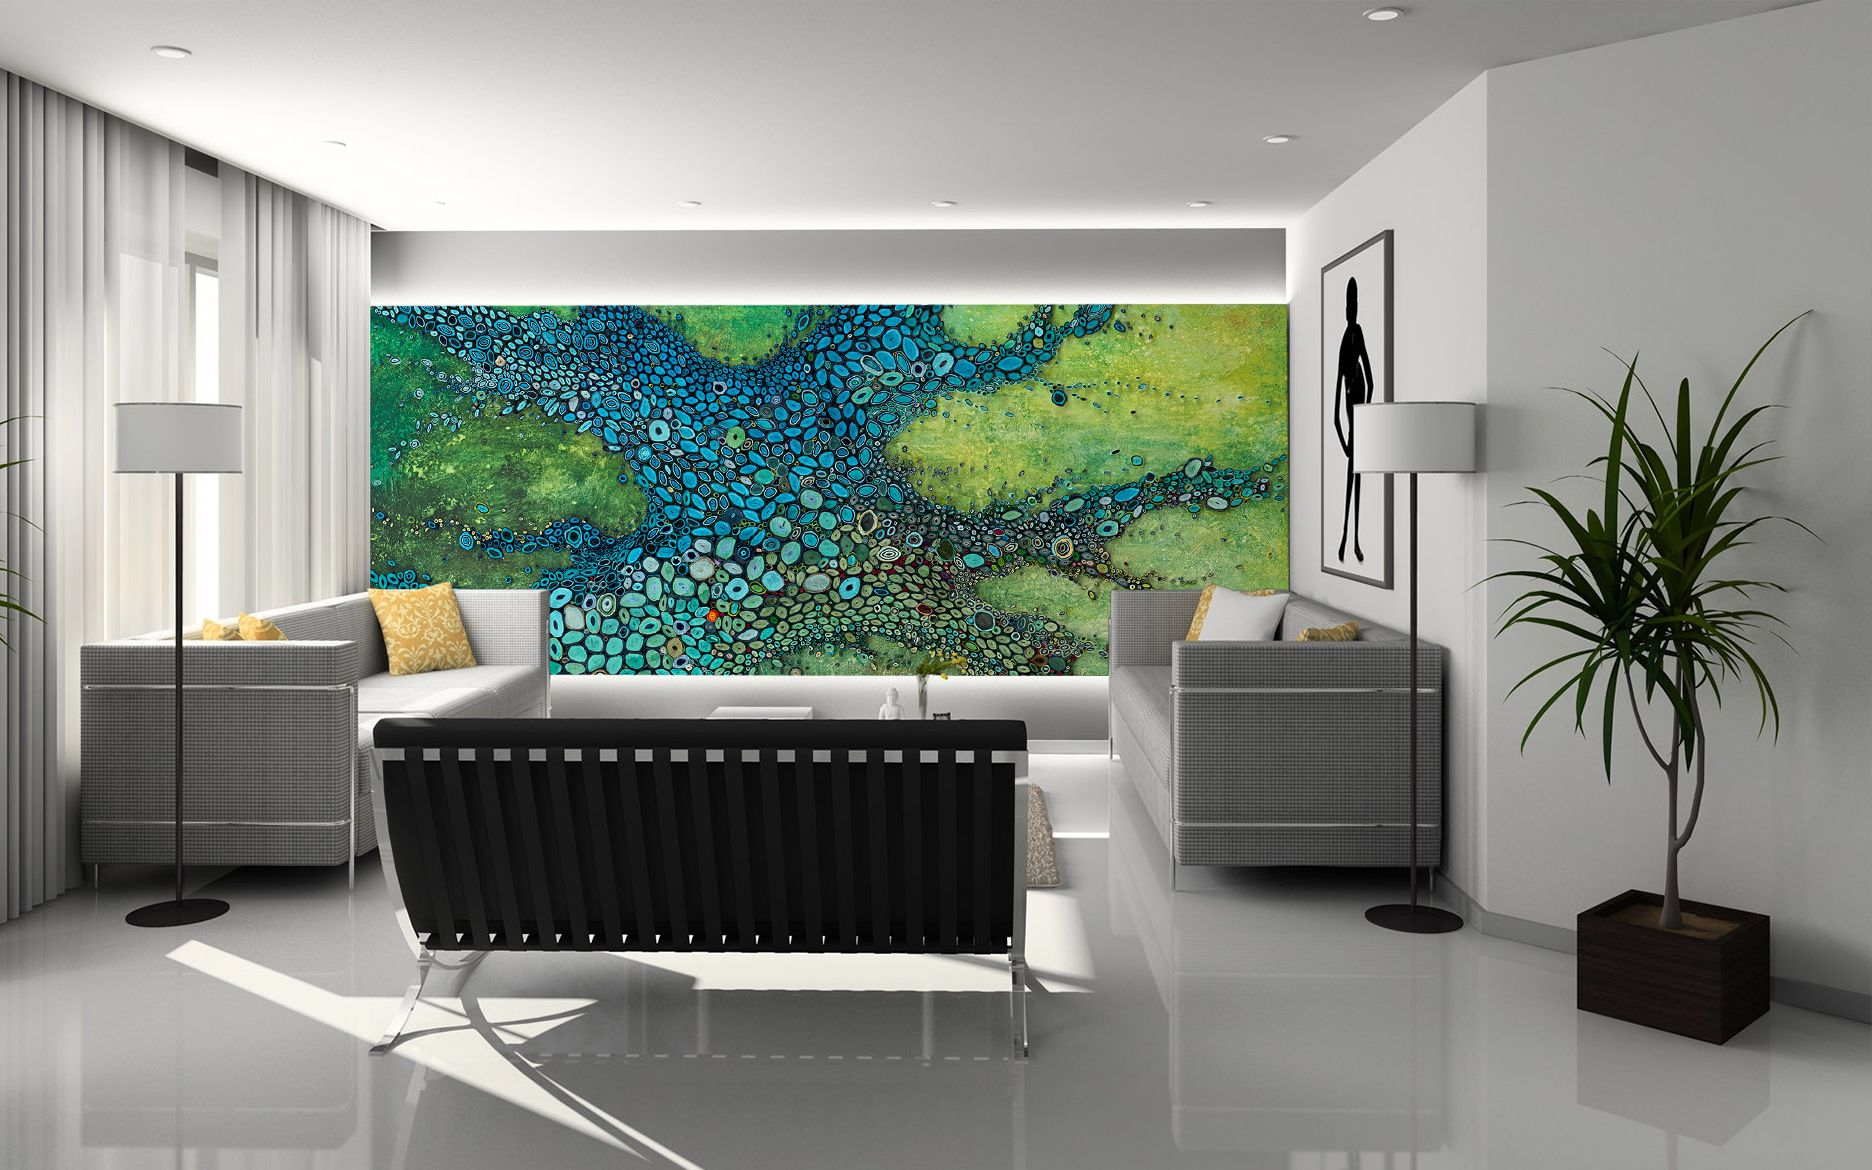 Part of our mural wall coverings showcasing fine artist